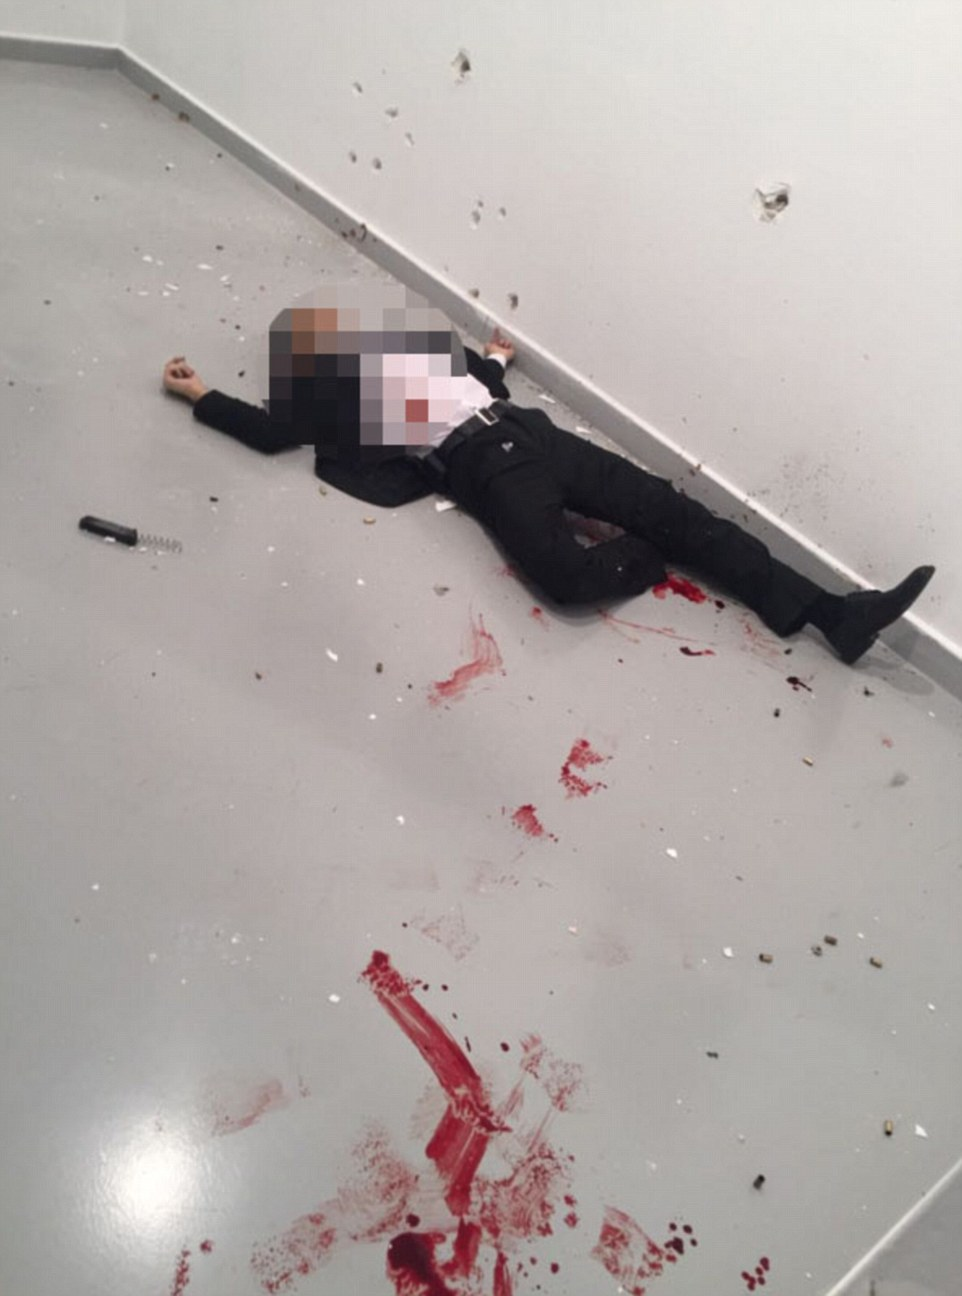 An image of the gunman, lying dead on the floor of the art gallery, was posted on Twitter